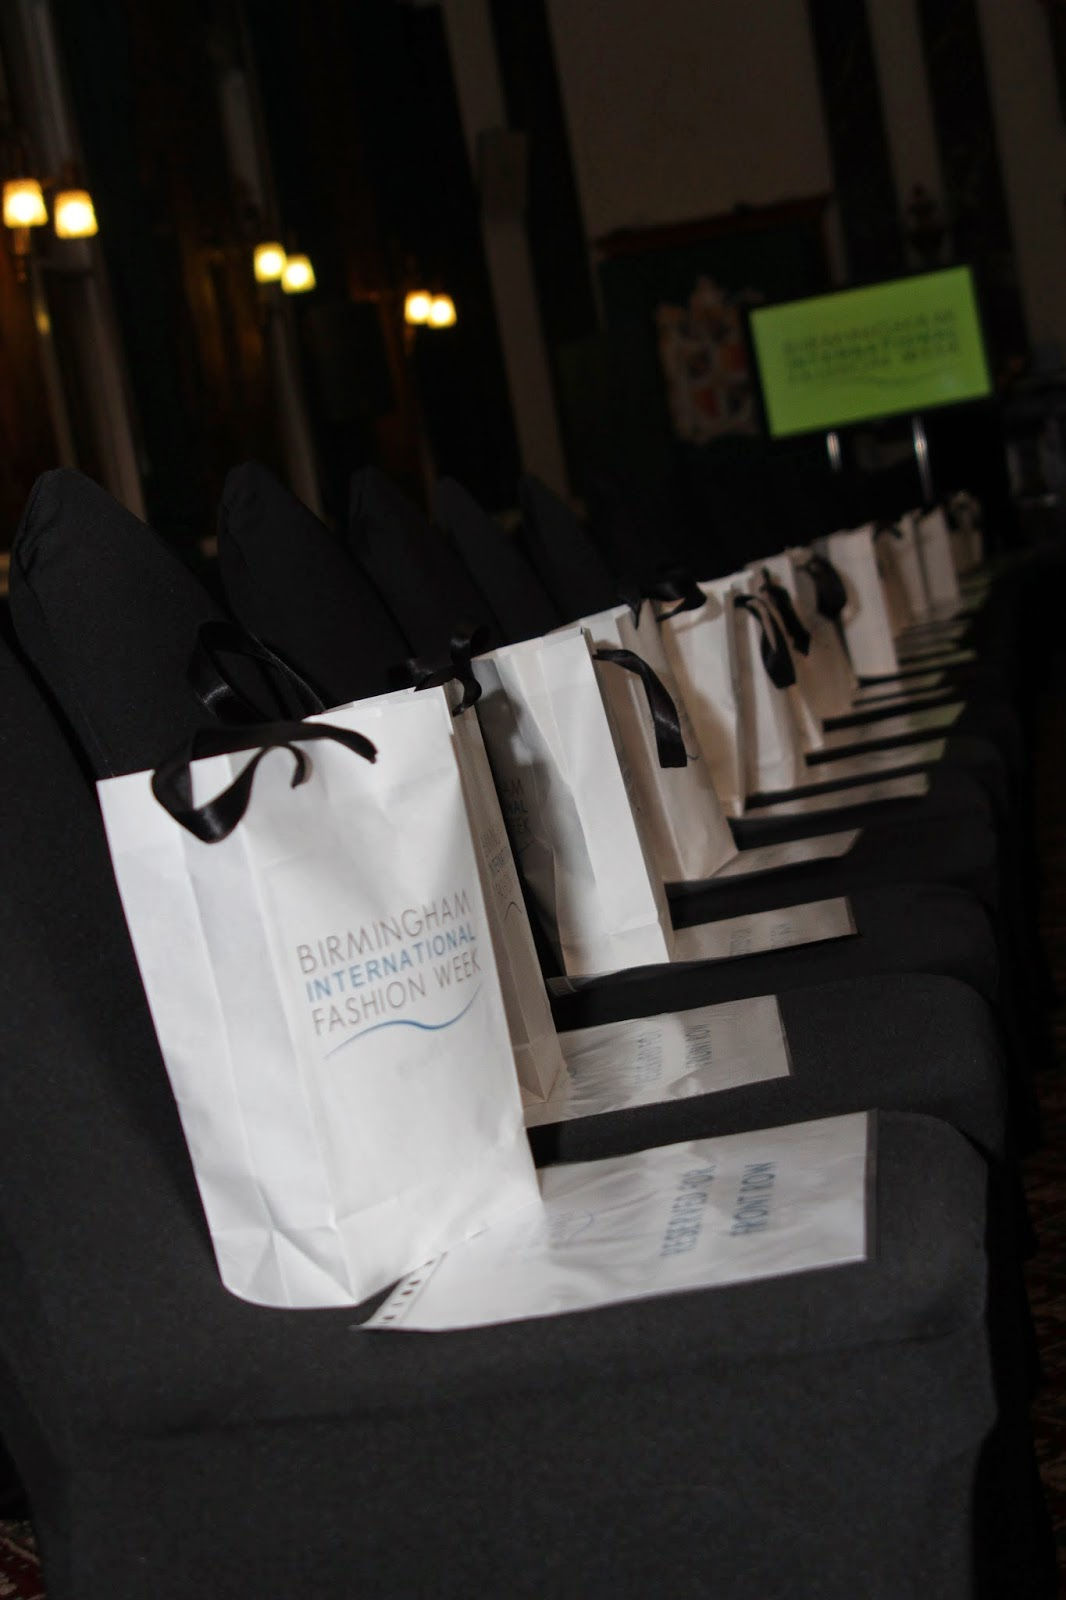 Birmingham International Fashion Week Show bags